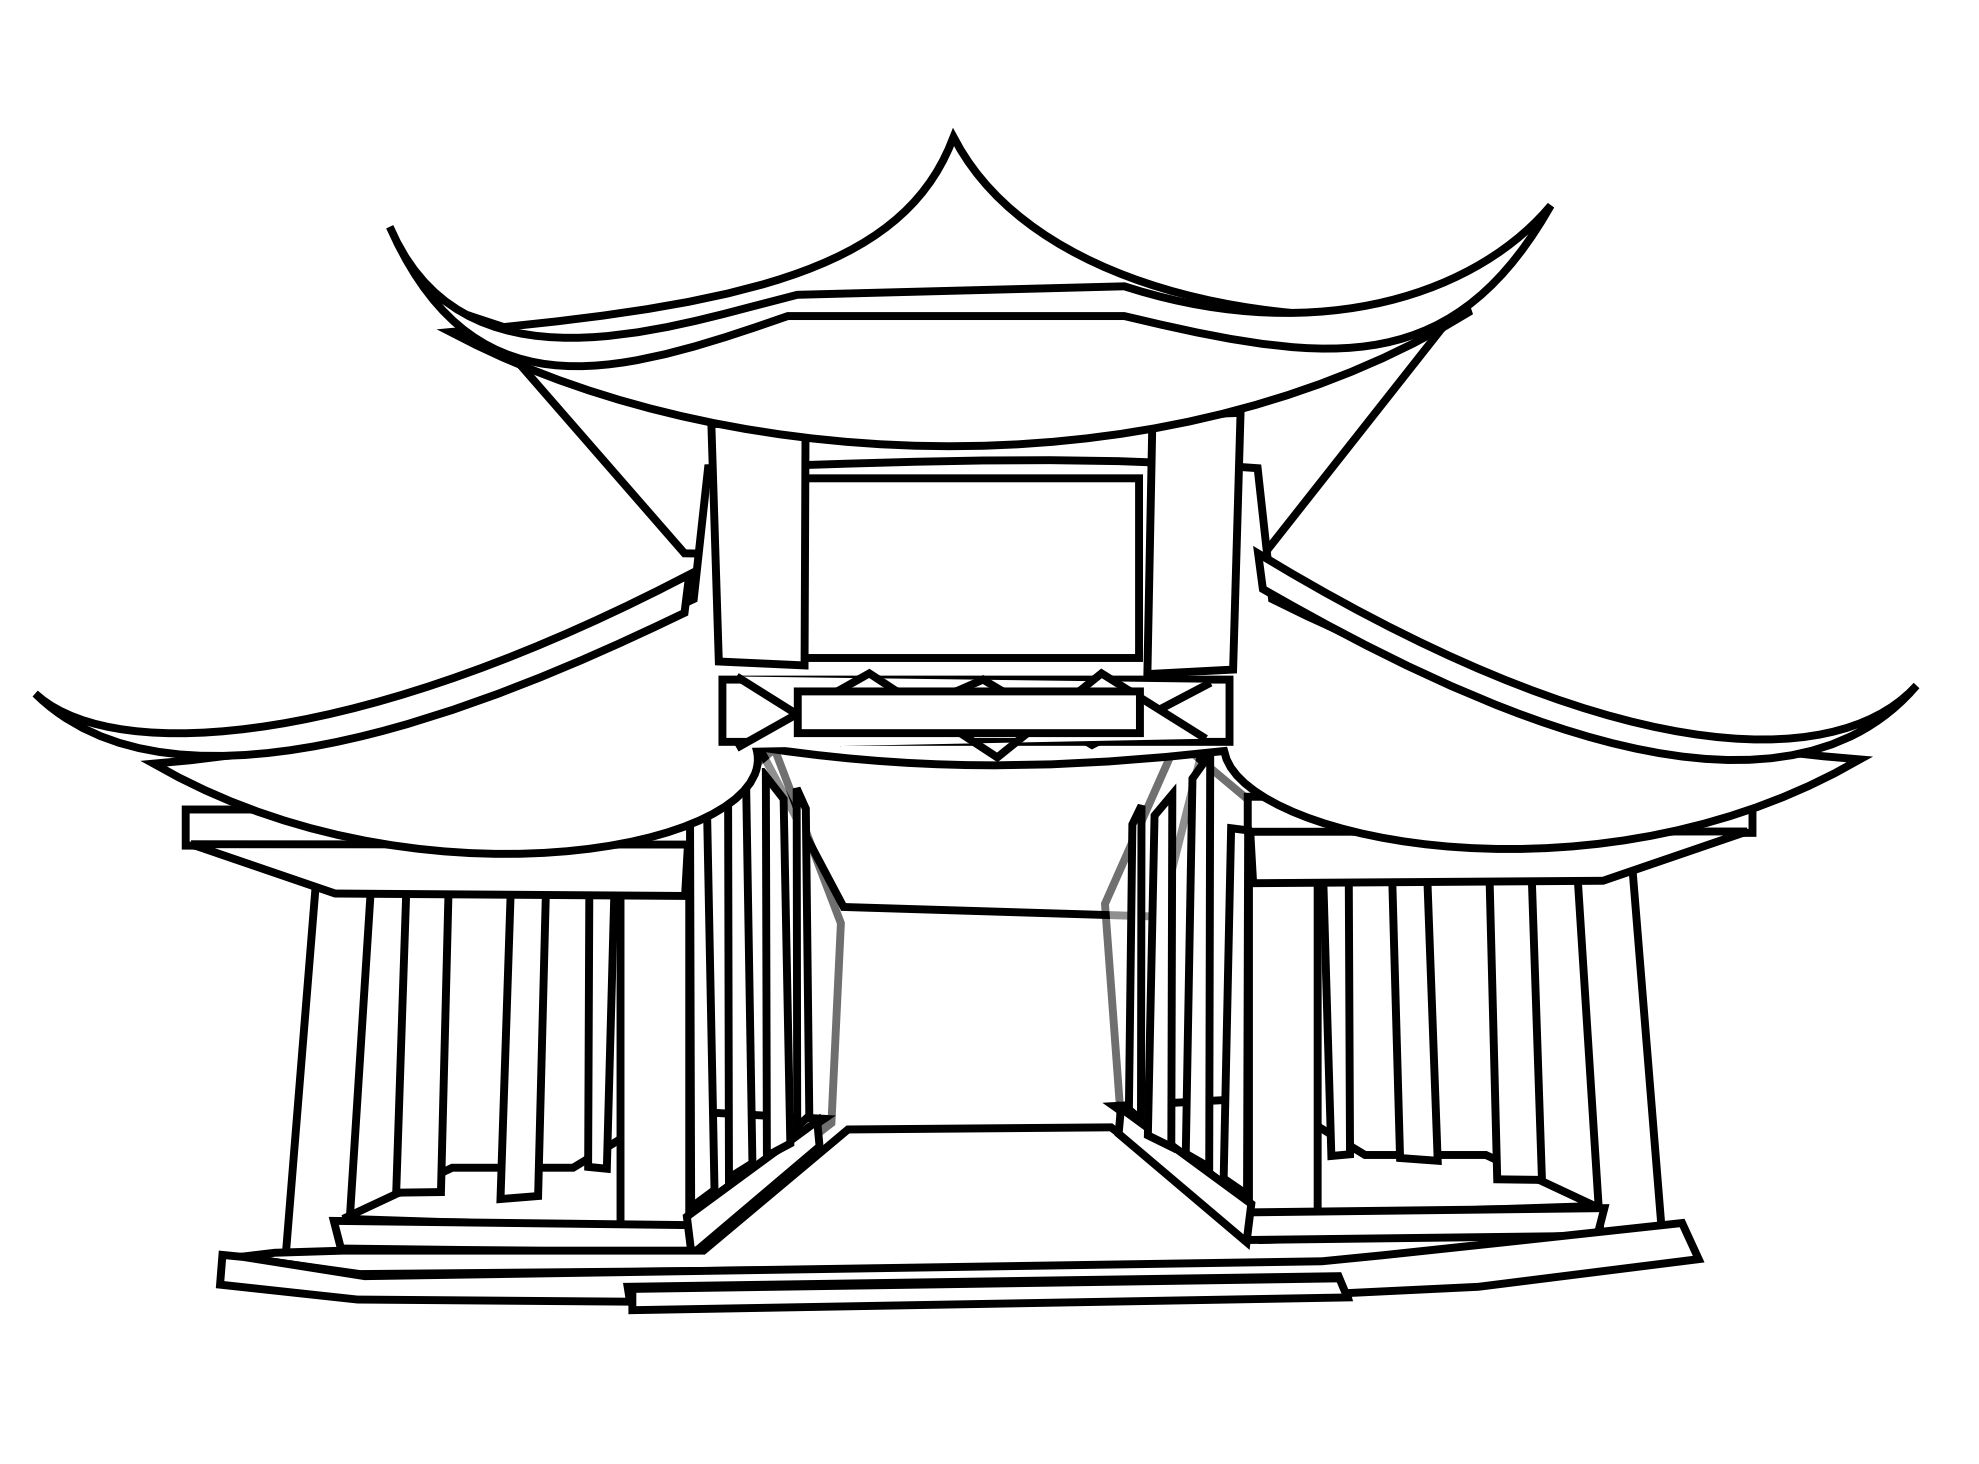 Asian house clipart clipart freeuse stock 28+ Collection of Asian Architecture Drawing | High quality, free ... clipart freeuse stock